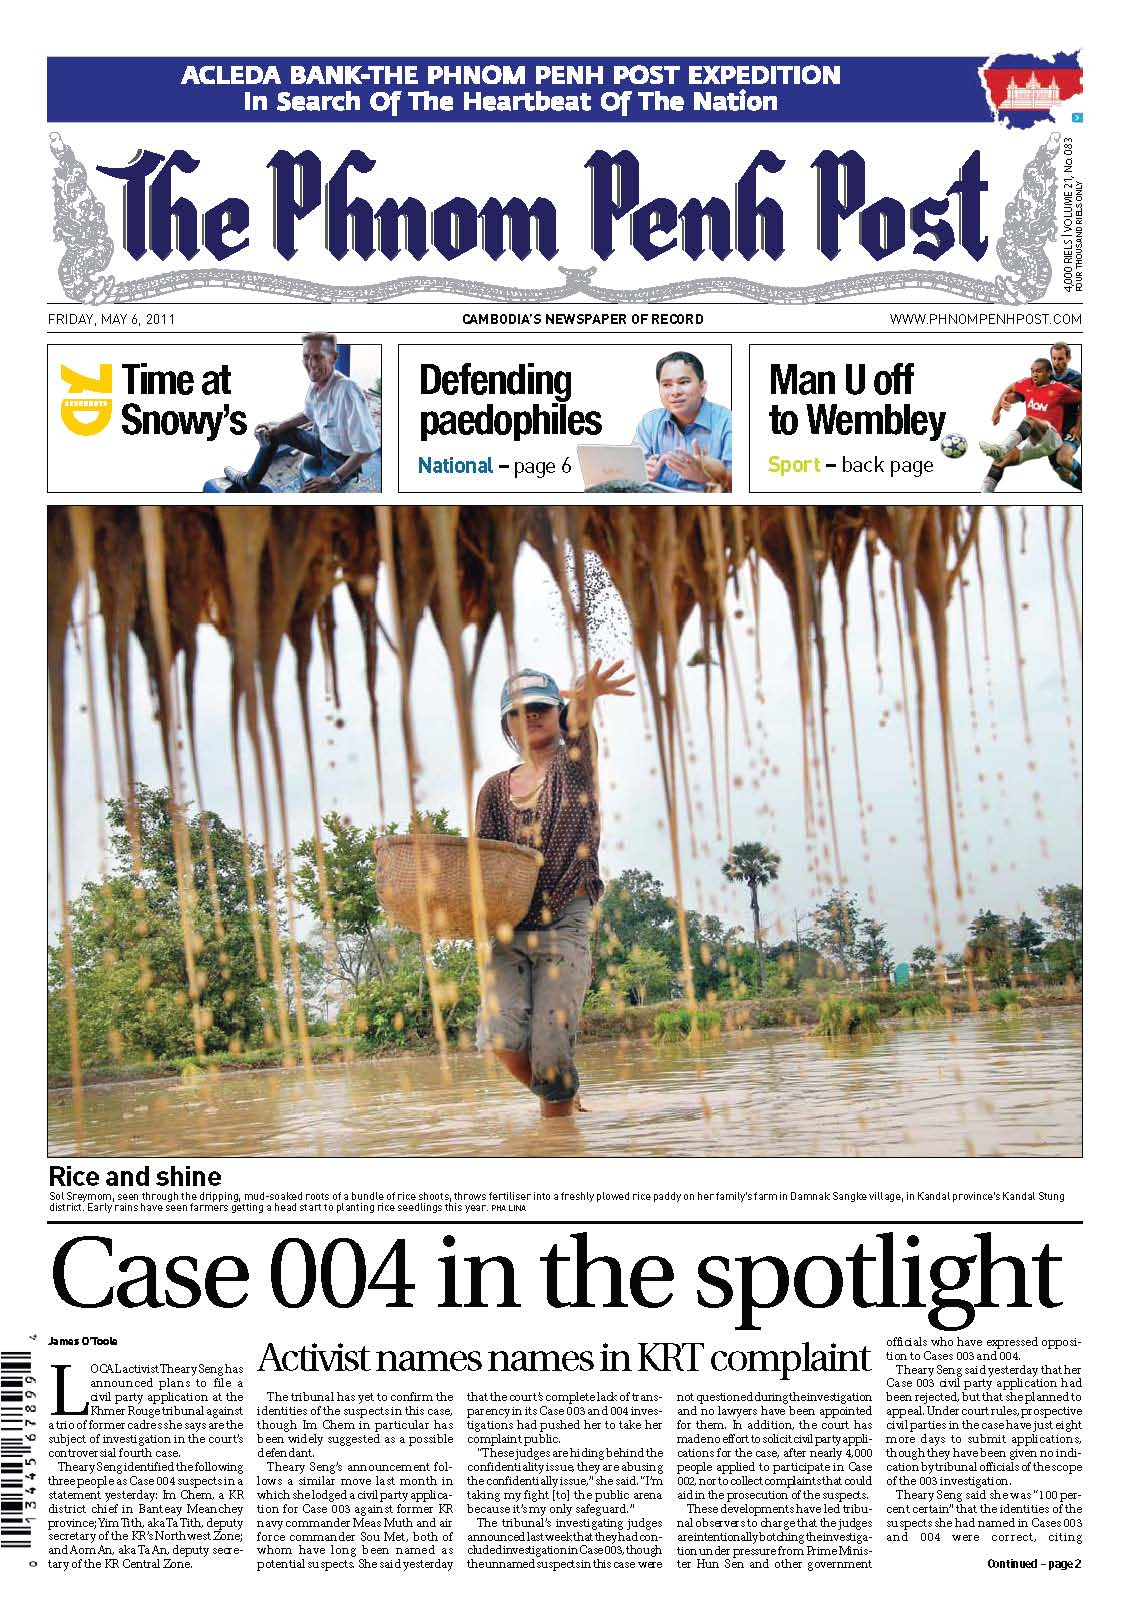 Case 004 frontpage of PPPost, 6 May 2011